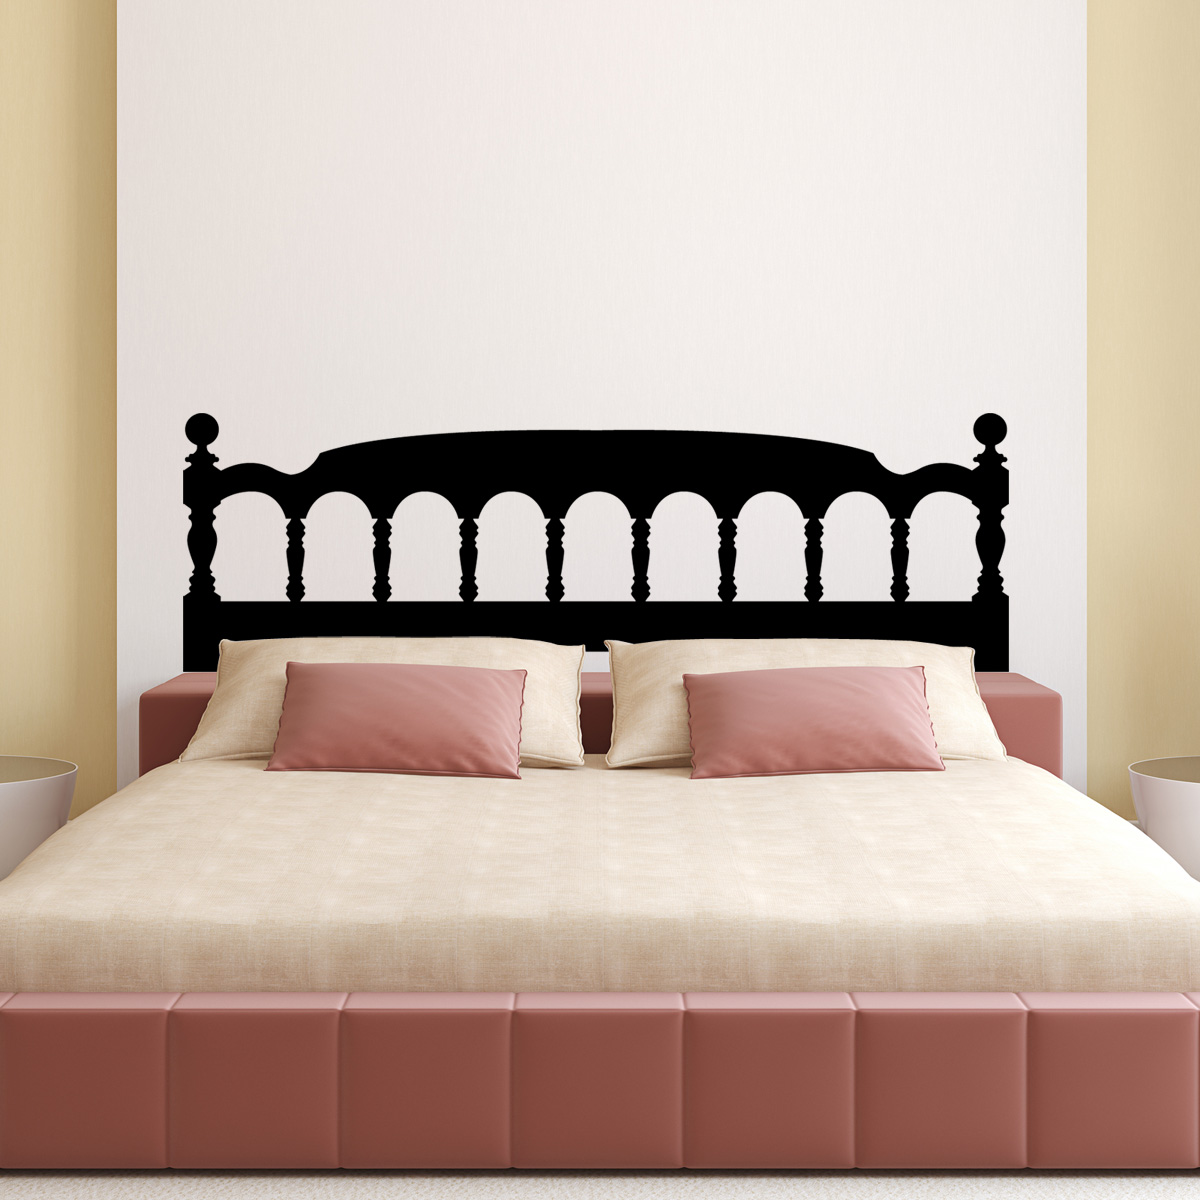 stickers muraux t tes de lit sticker mural t te de lit en bois avec des arcs ambiance. Black Bedroom Furniture Sets. Home Design Ideas